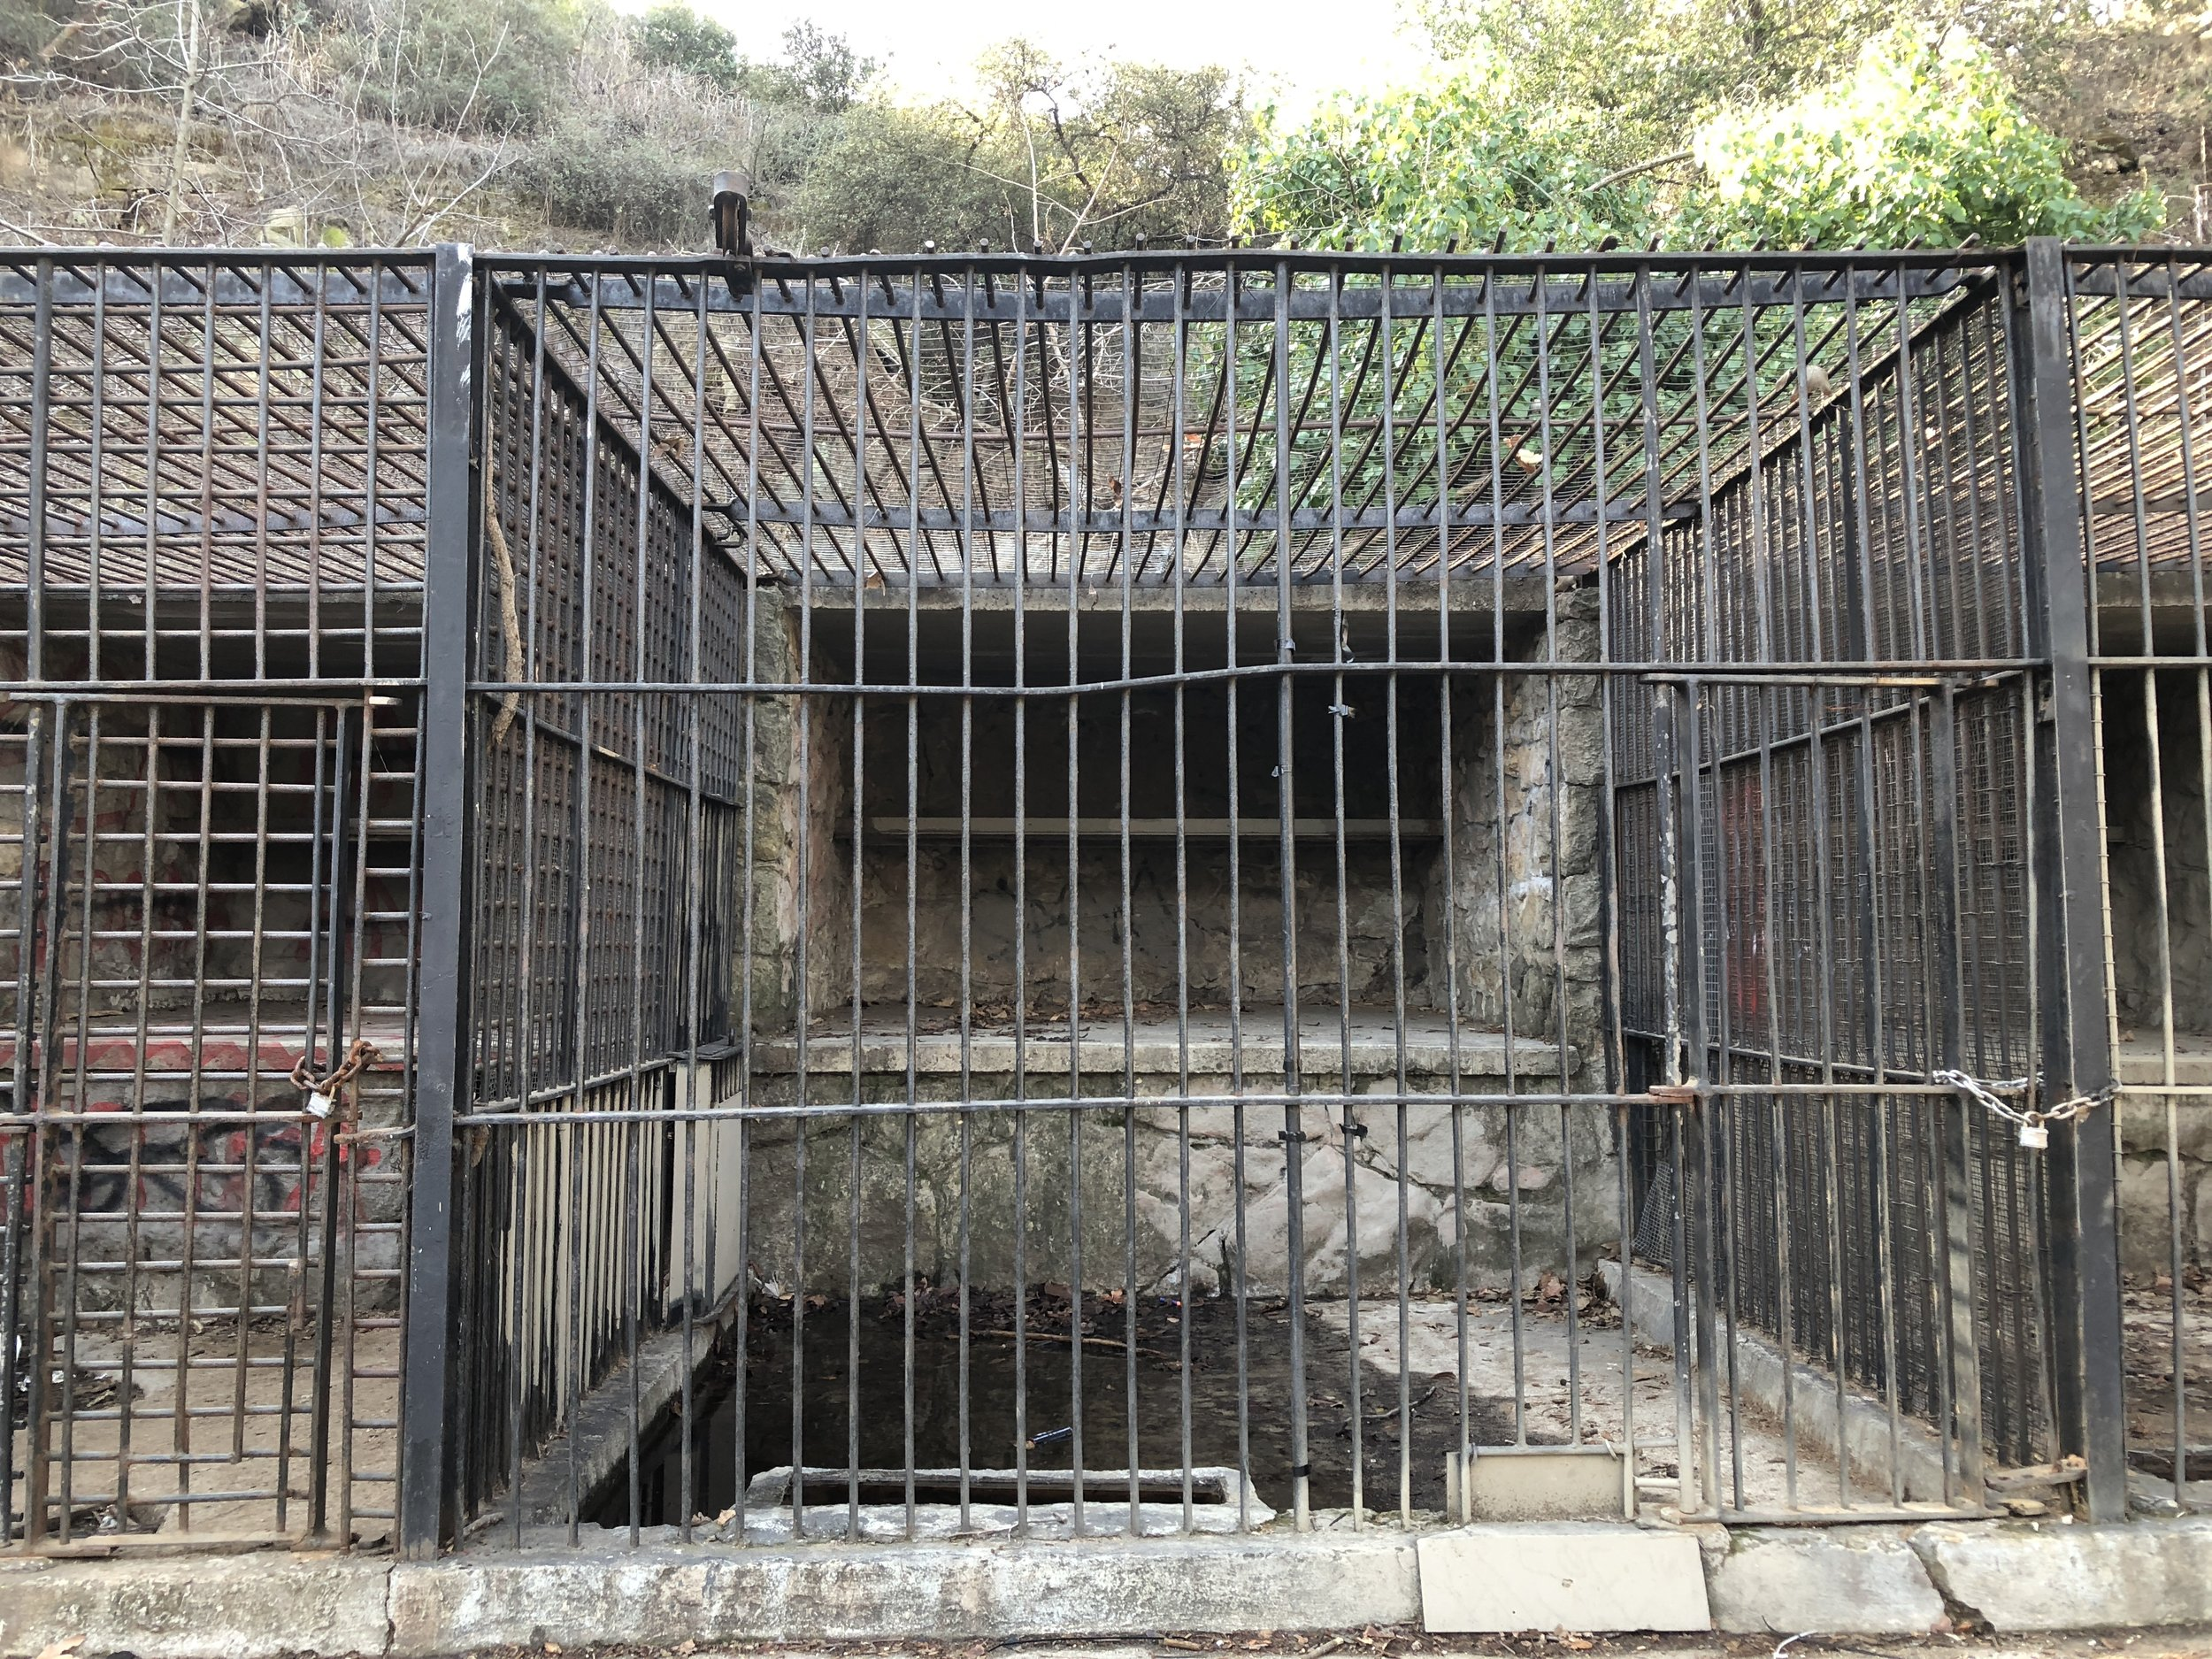 The remaining animal cages of the Old Griffith Park Zoo